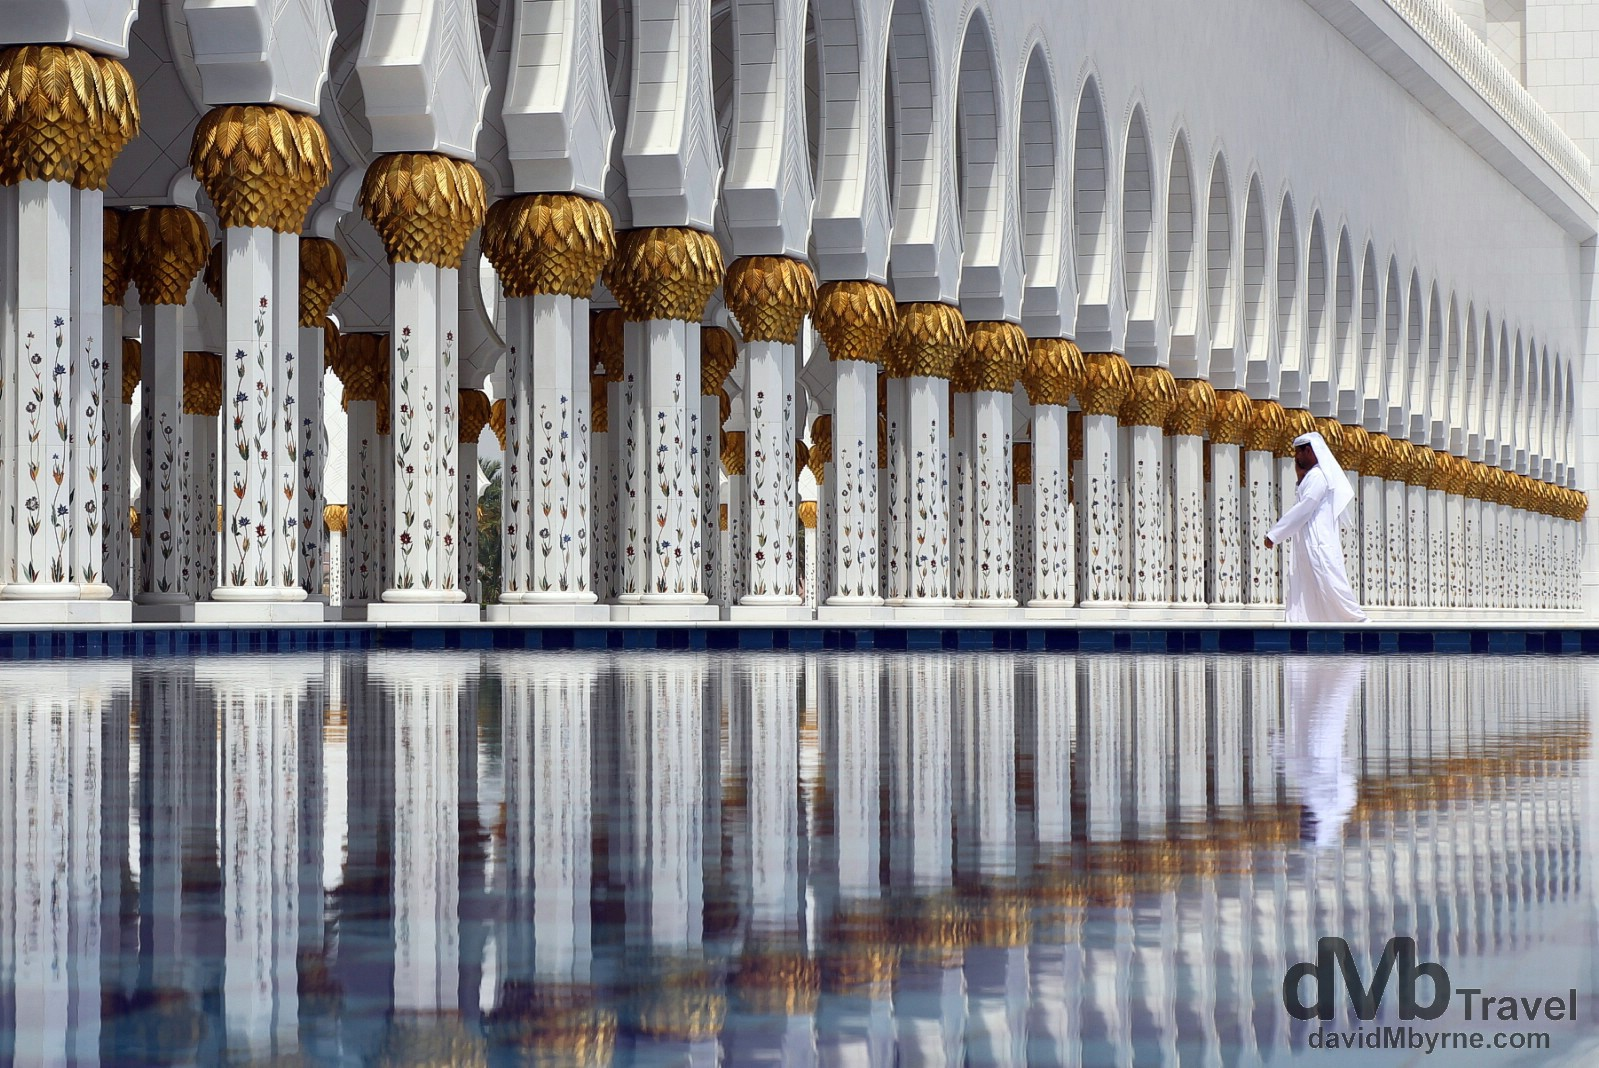 Reflections and repetition. Sheikh Zayed Grand Mosque, Abu Dhabi, UAE. April 23rd, 2014.